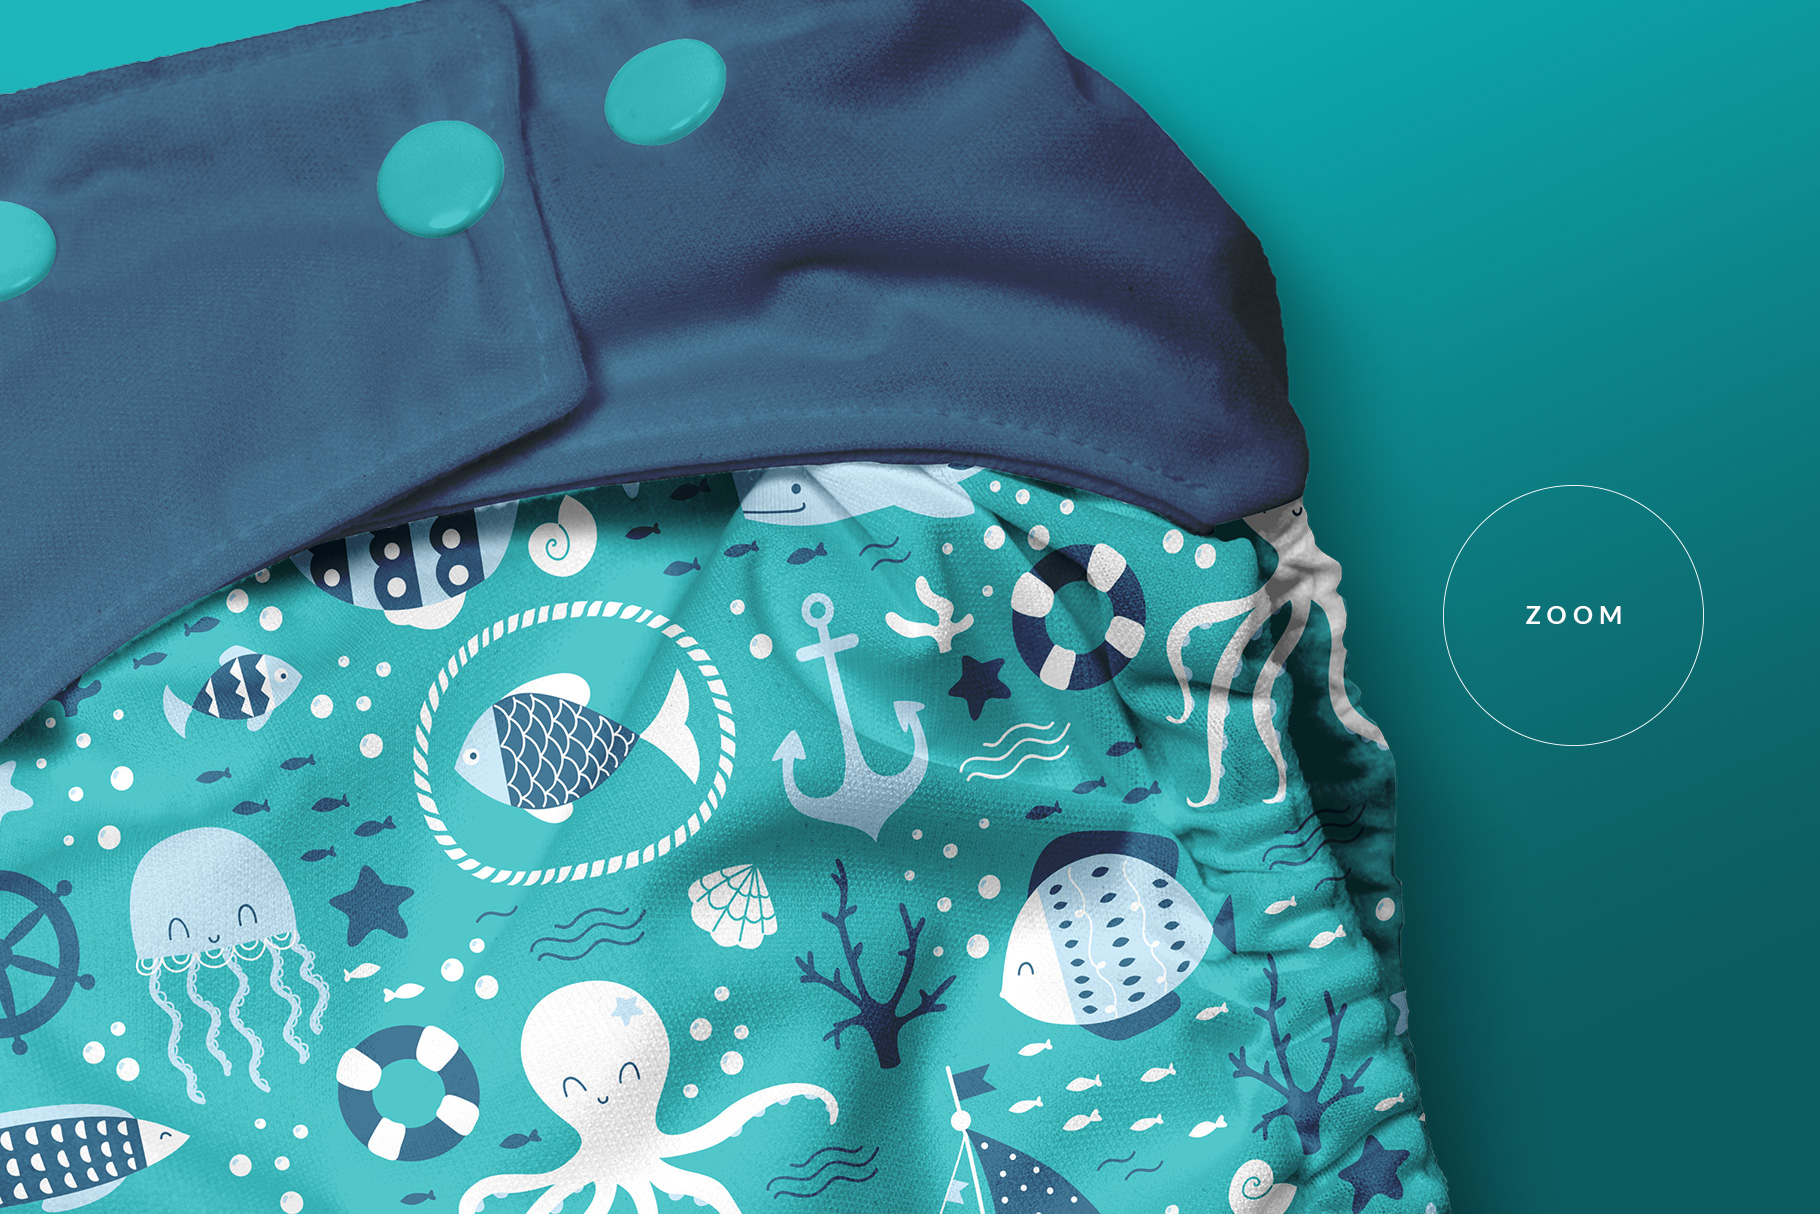 zoomed in image of the reusable cloth diaper mockup